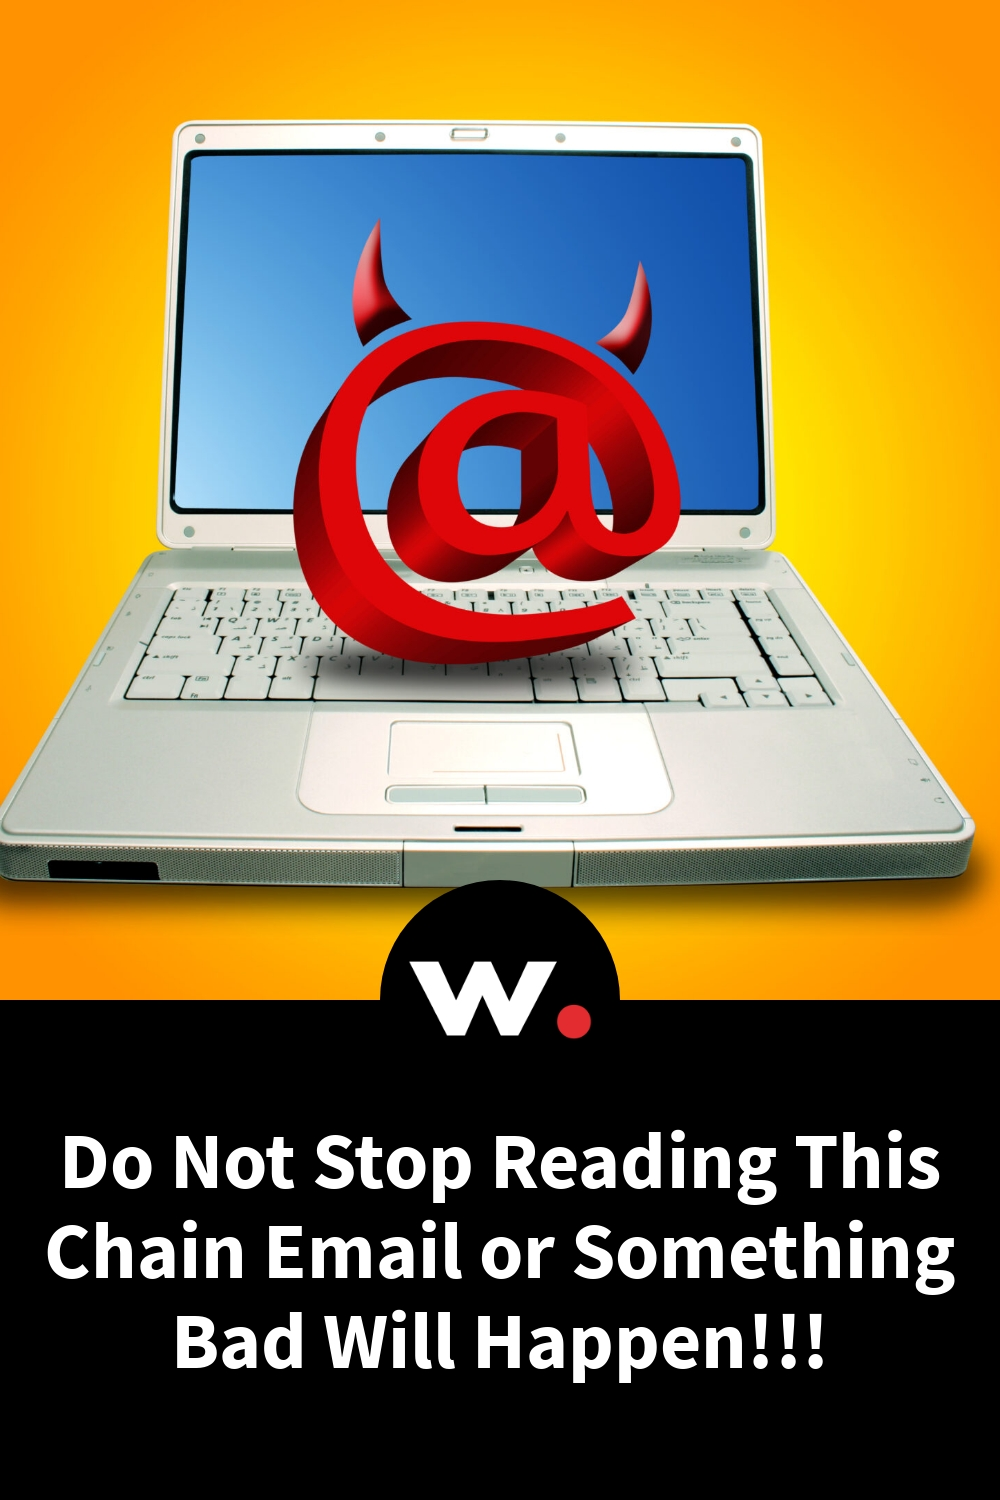 Do Not Stop Reading This Chain Email or Something Bad Will Happen!!!